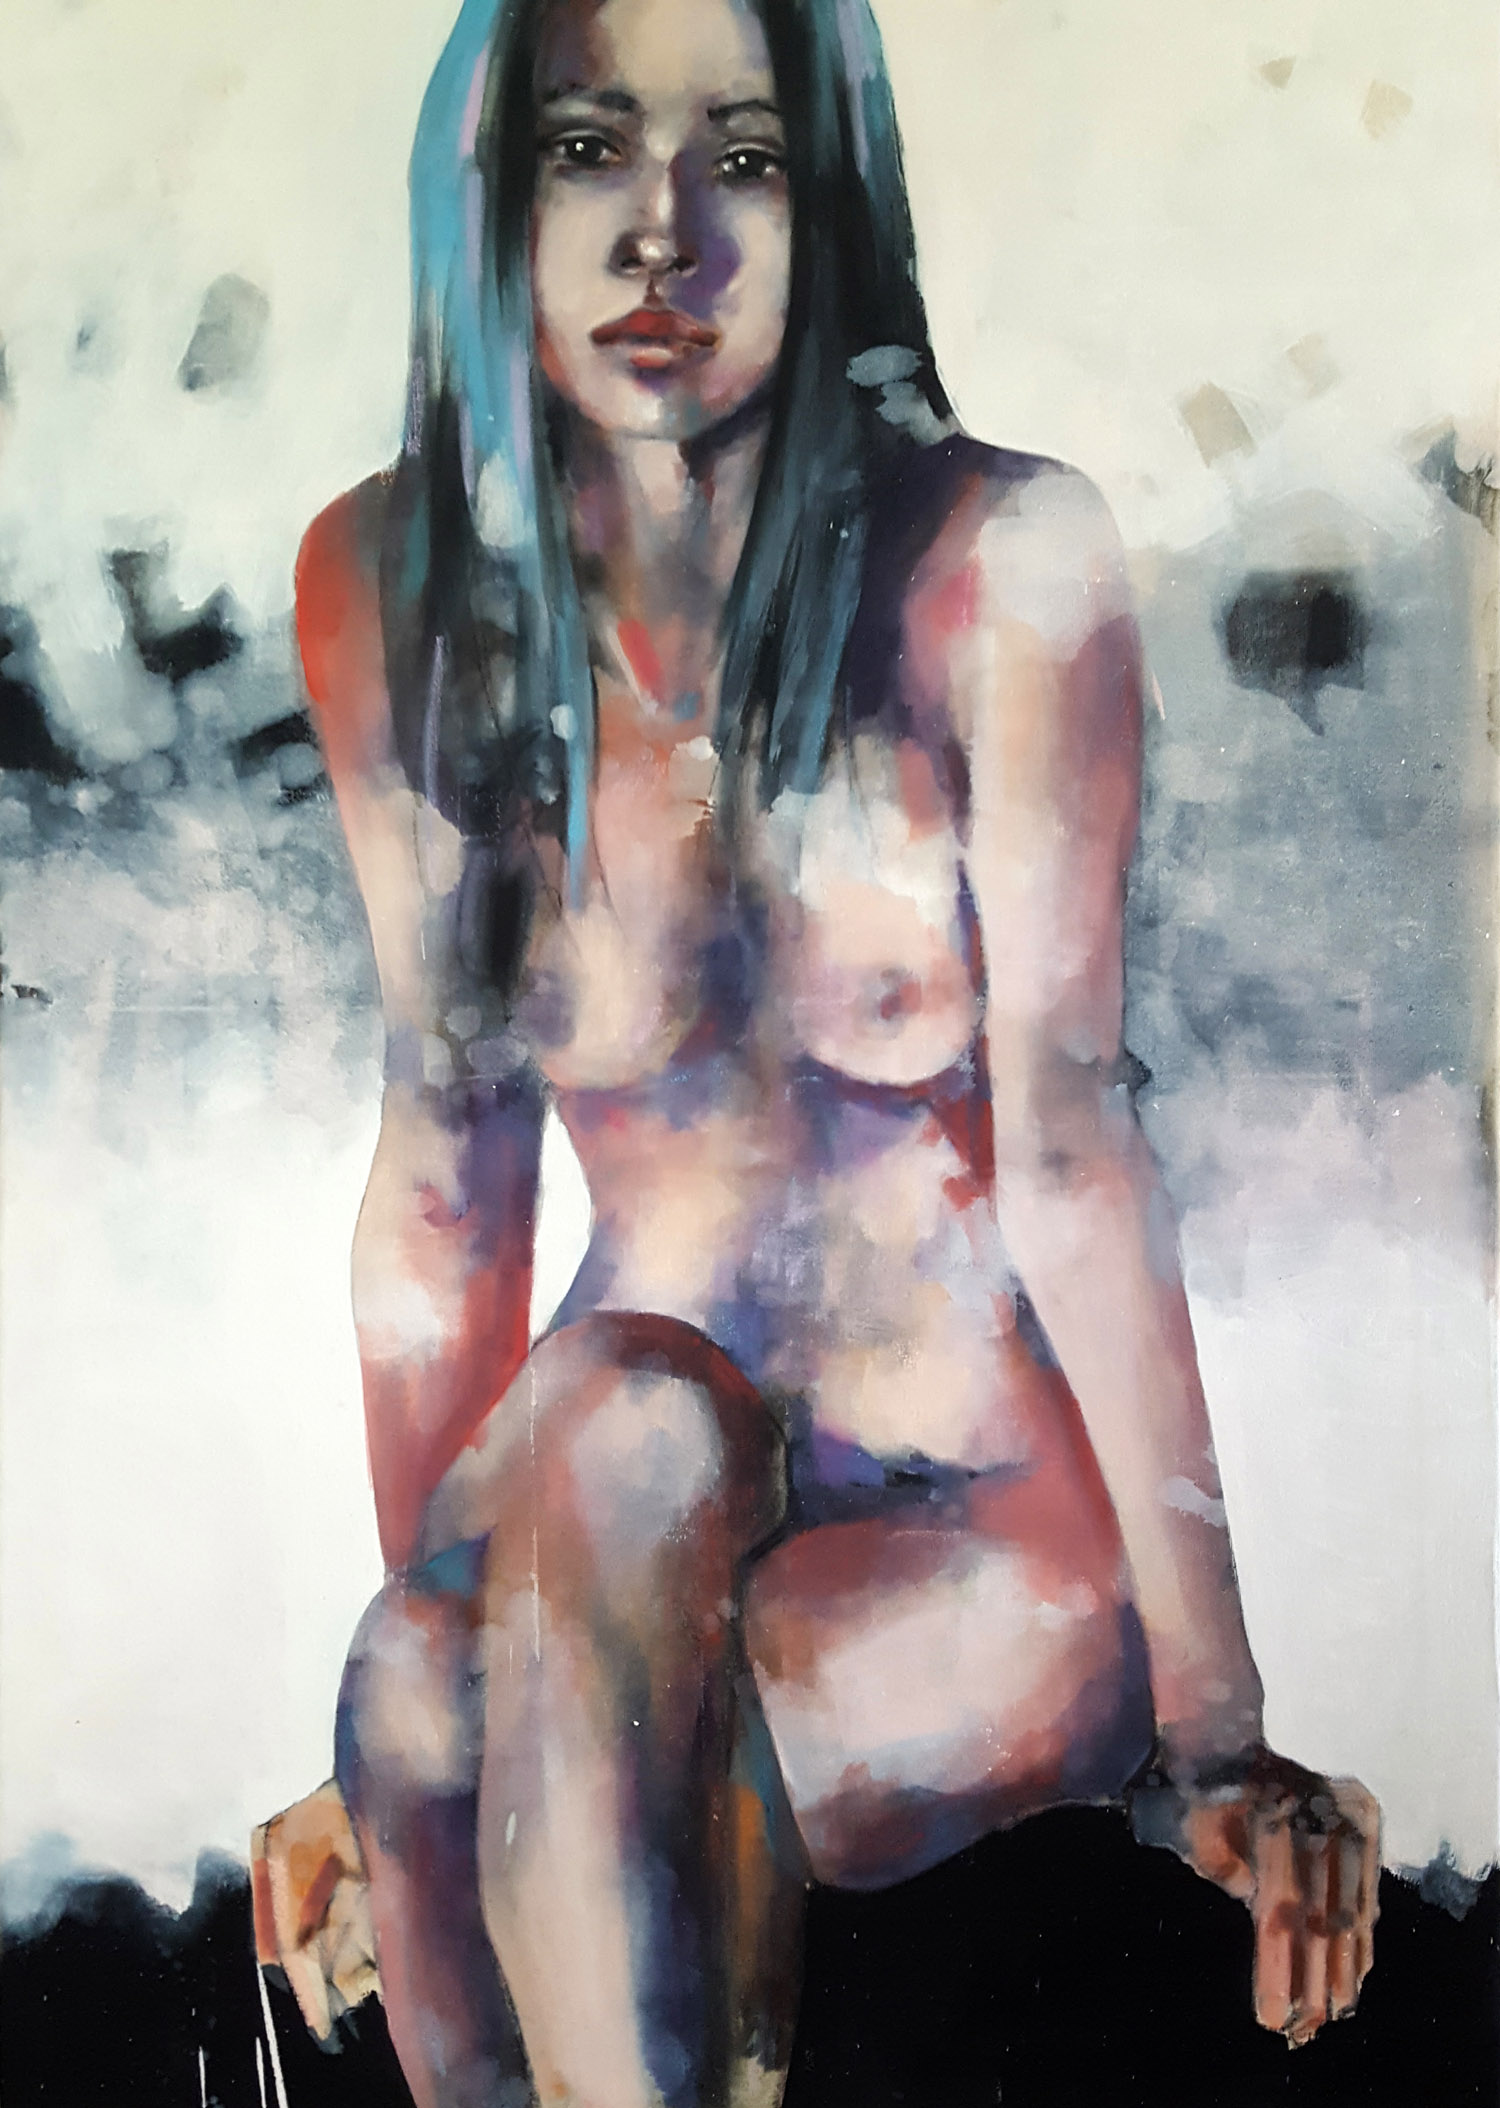 4-2-18 figure, oil on canvas, 100x70cm